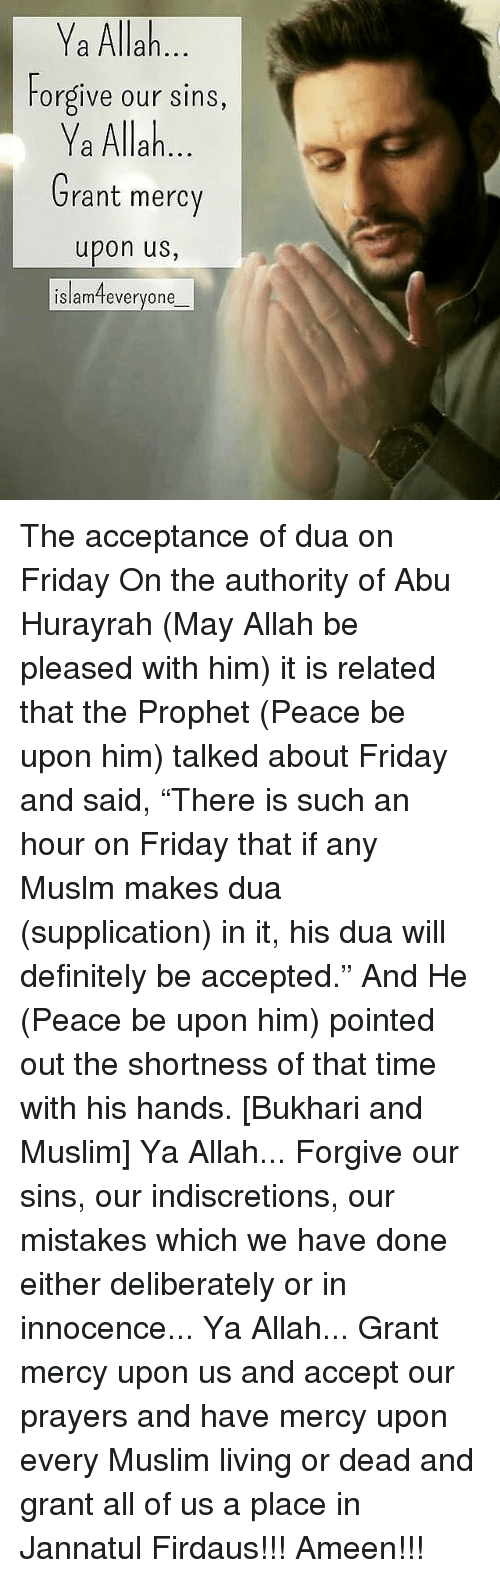 "Have Mercy: Ya Allah  Forgive our sins,  Ya Allah  Grant mercy  upon us,  islamteveryone The acceptance of dua on Friday On the authority of Abu Hurayrah (May Allah be pleased with him) it is related that the Prophet (Peace be upon him) talked about Friday and said, ""There is such an hour on Friday that if any Muslm makes dua (supplication) in it, his dua will definitely be accepted."" And He (Peace be upon him) pointed out the shortness of that time with his hands. [Bukhari and Muslim] Ya Allah... Forgive our sins, our indiscretions, our mistakes which we have done either deliberately or in innocence... Ya Allah... Grant mercy upon us and accept our prayers and have mercy upon every Muslim living or dead and grant all of us a place in Jannatul Firdaus!!! Ameen!!!"